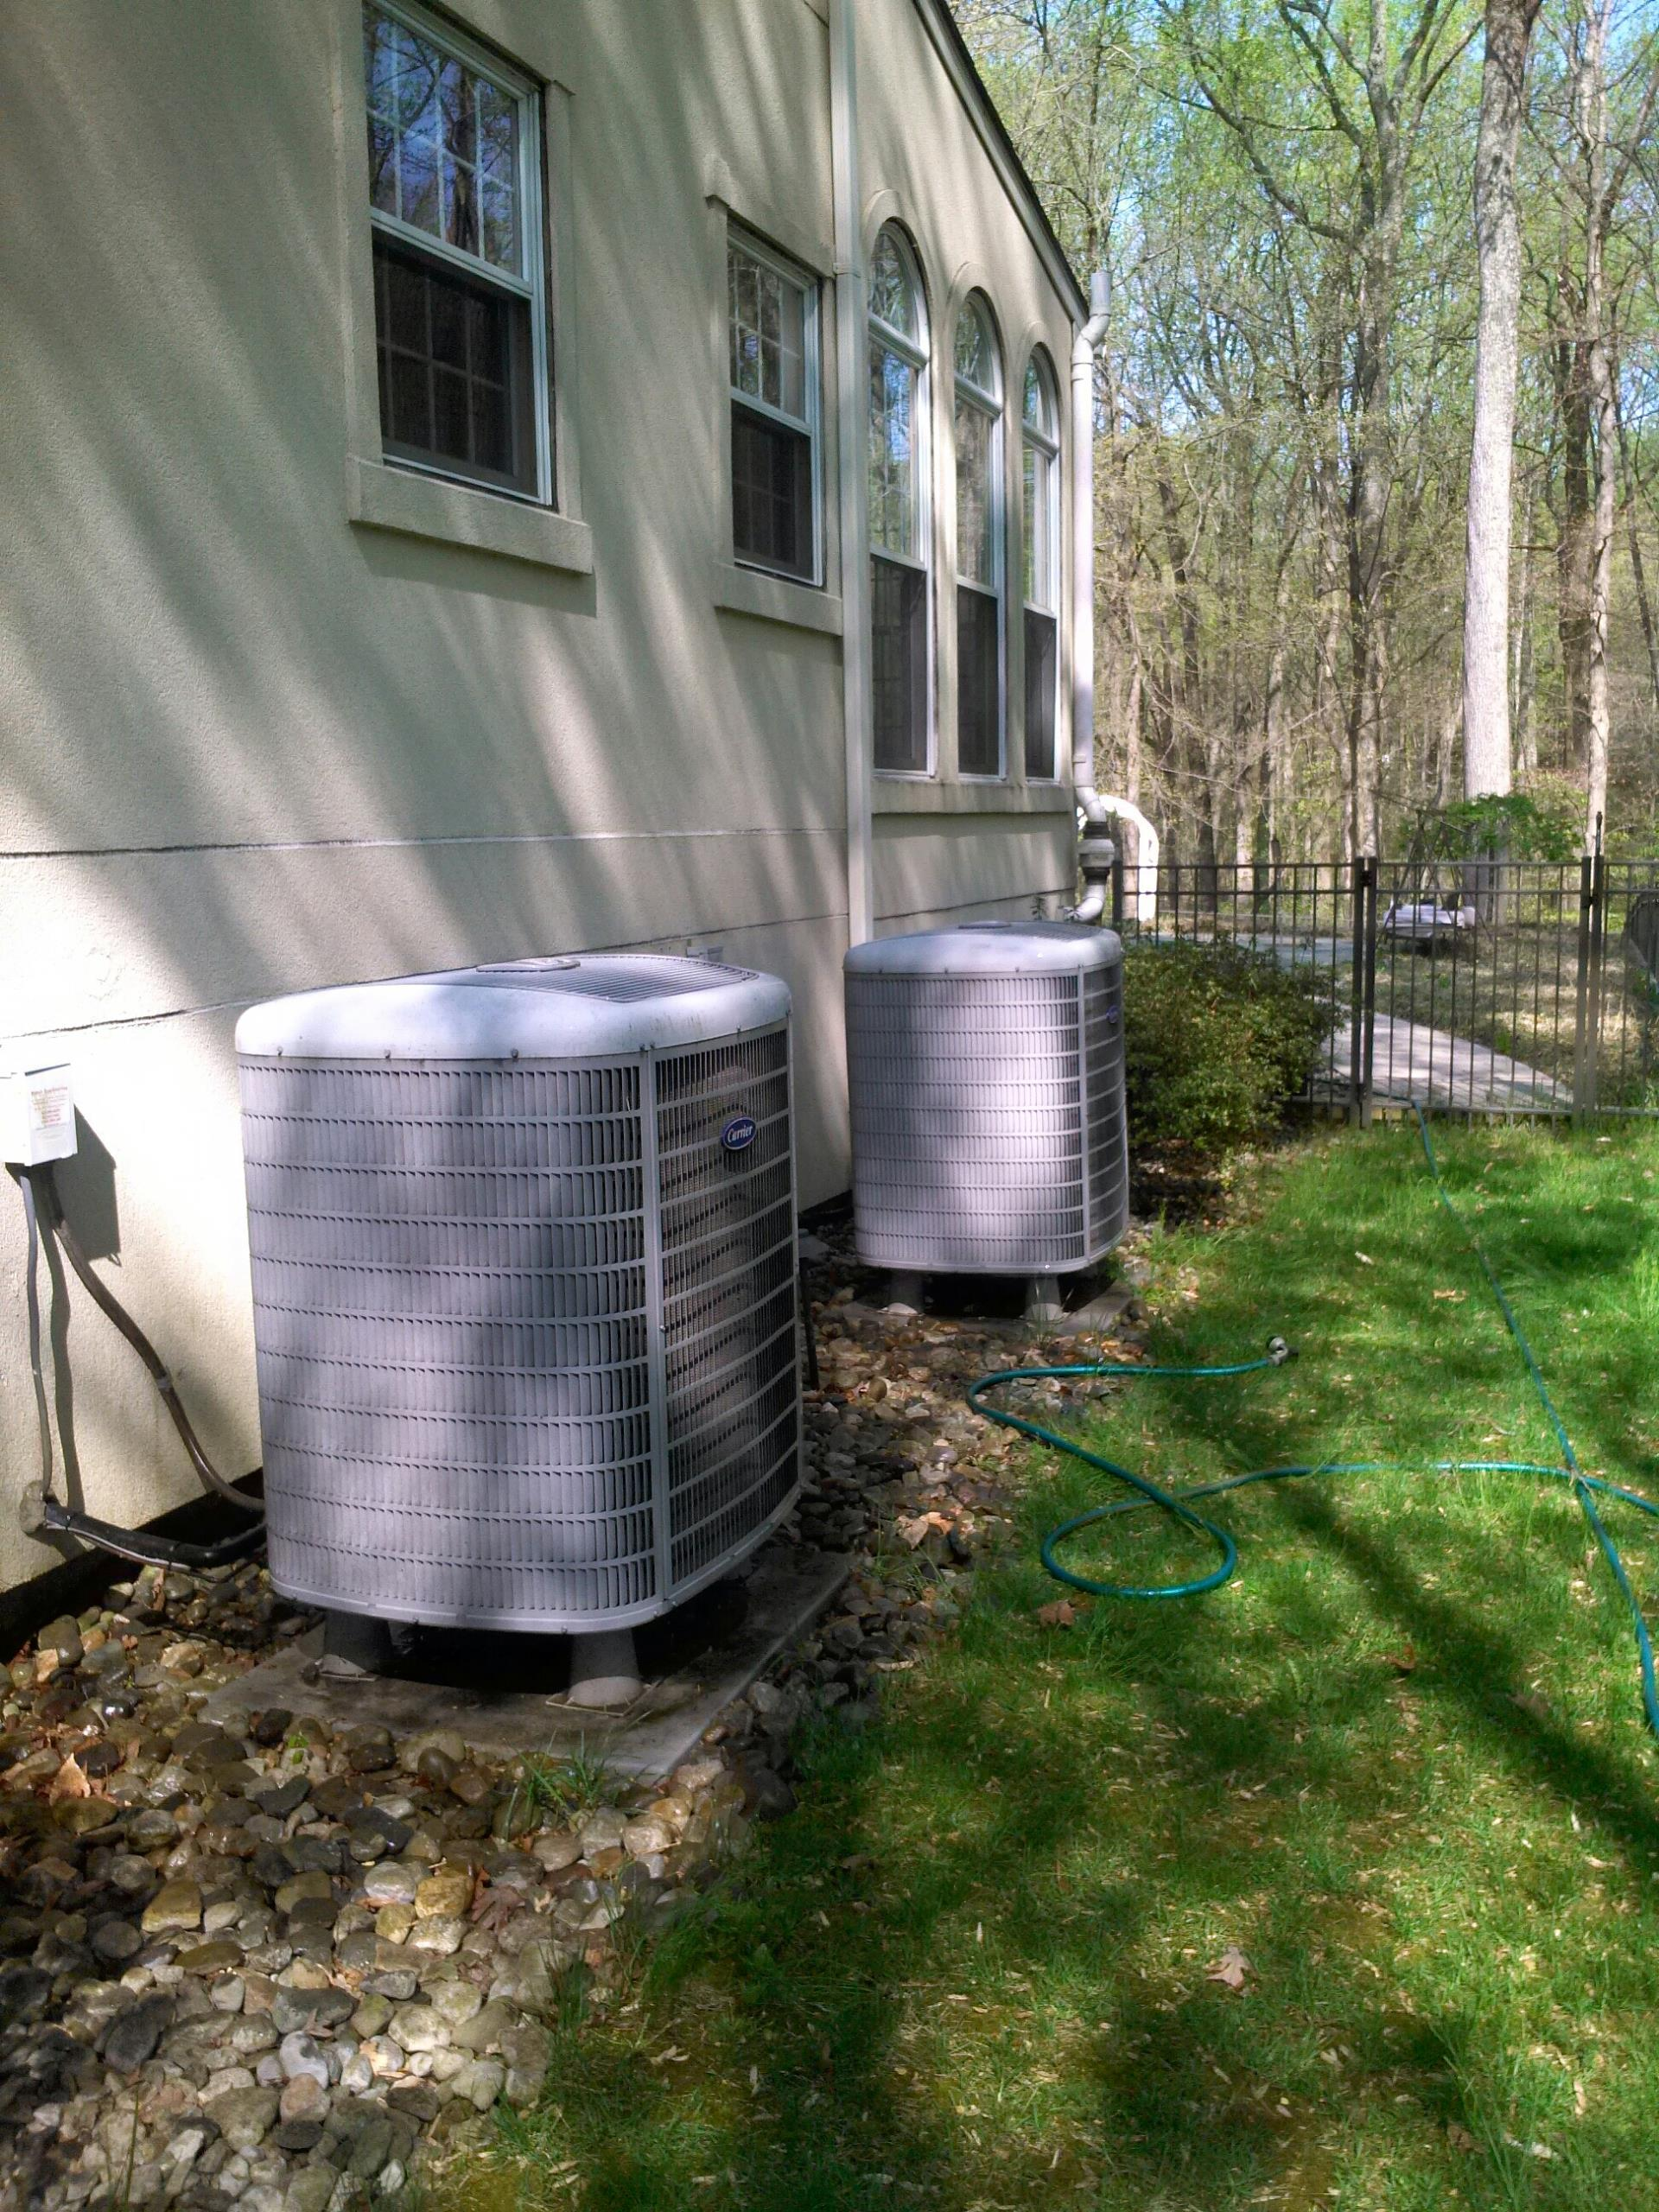 Crownsville, MD - Heat pump heating & ac air conditioning system installation repair service call.